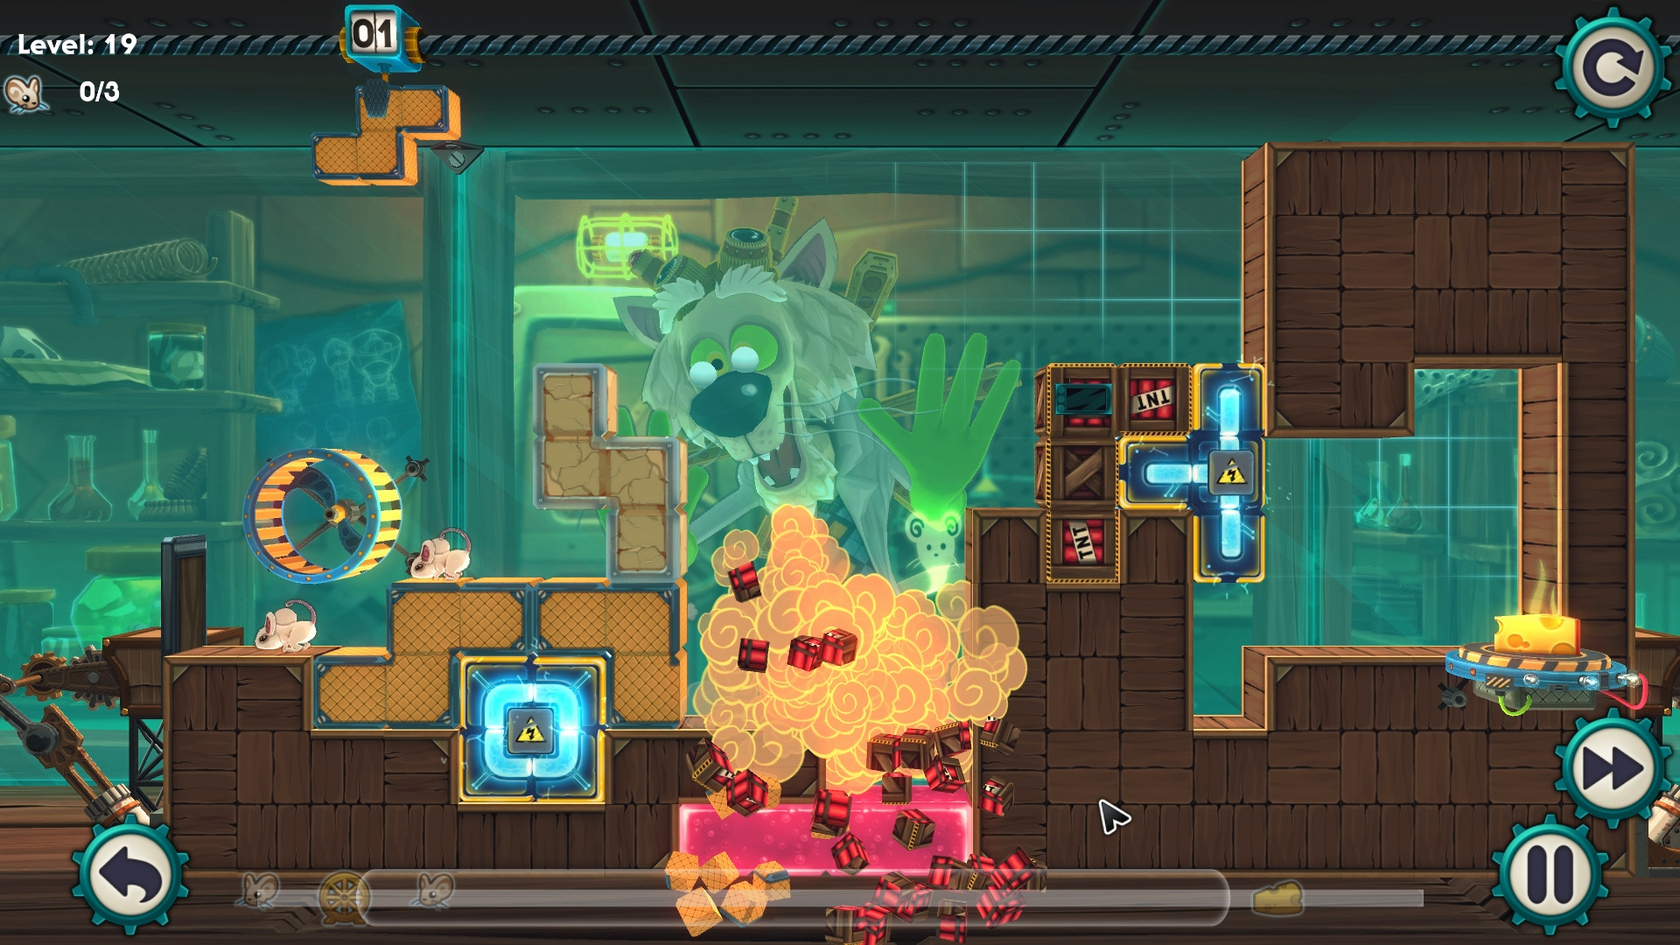 MouseCraft coming to PS3, PS4, and PS Vita